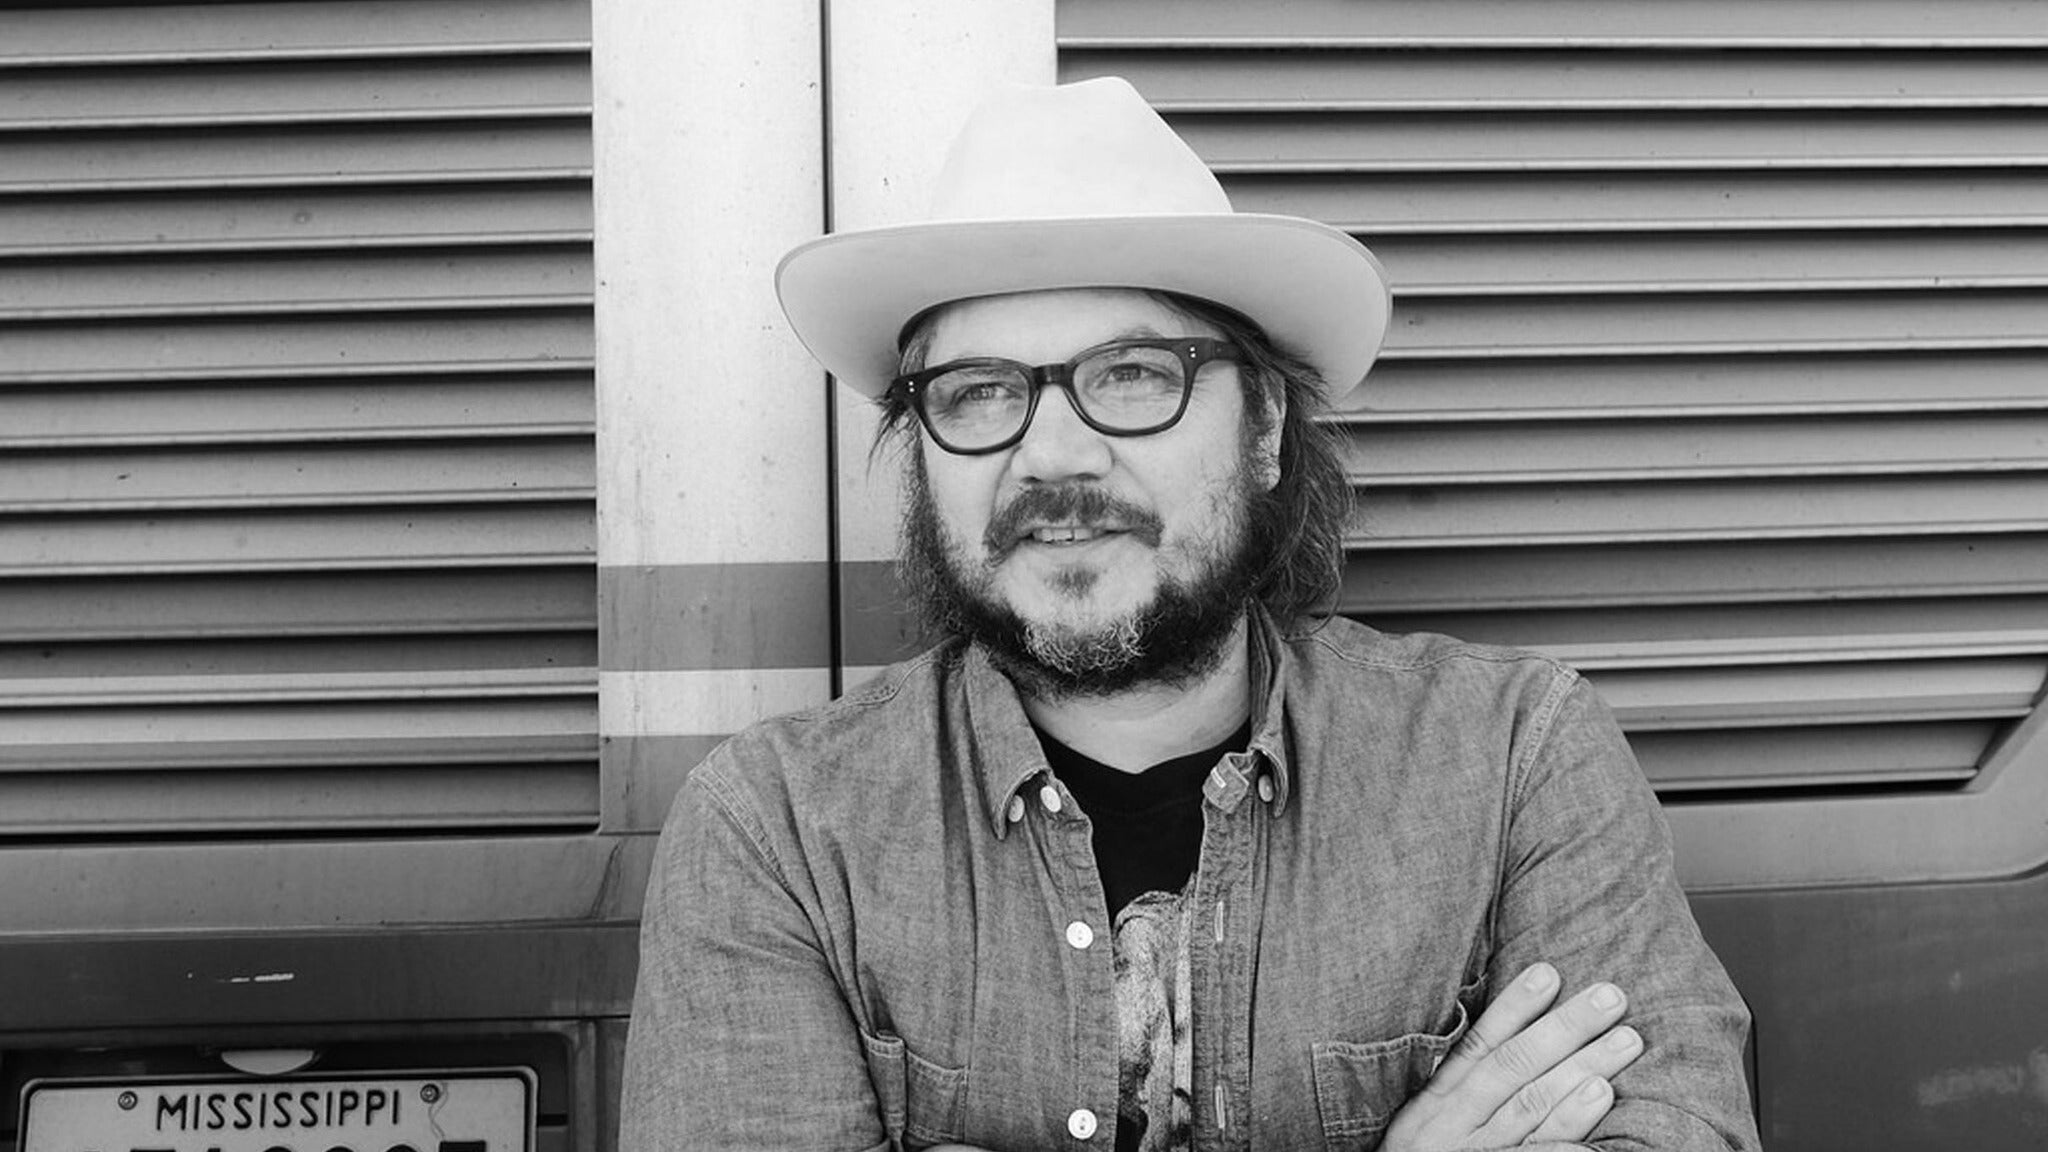 Jeff Tweedy at The Fillmore